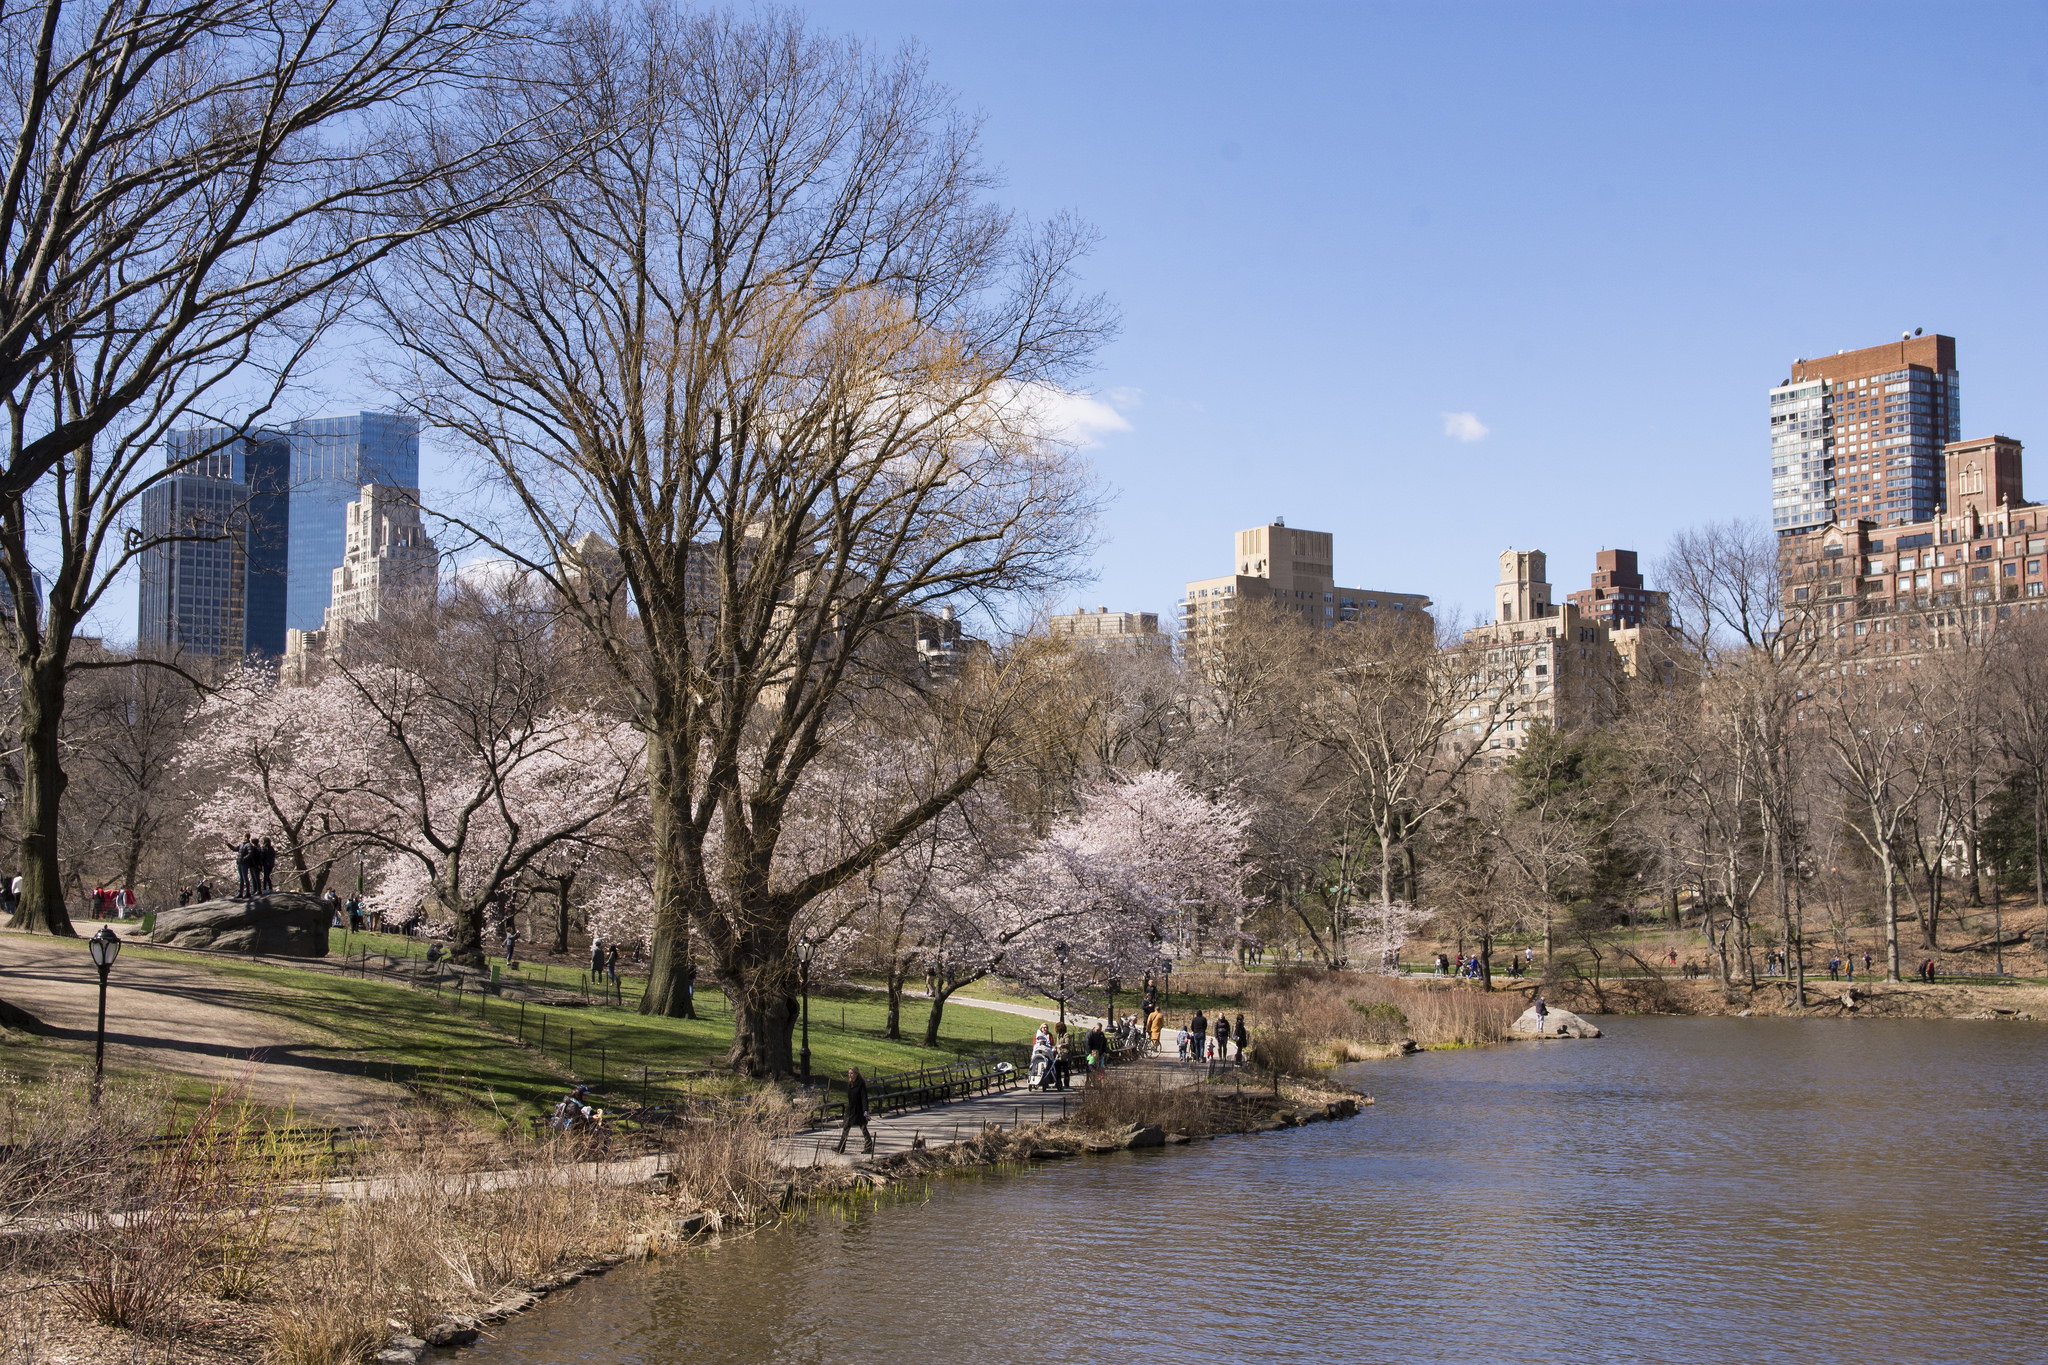 A Central Park scene with a lake, trees and skyscrapers.